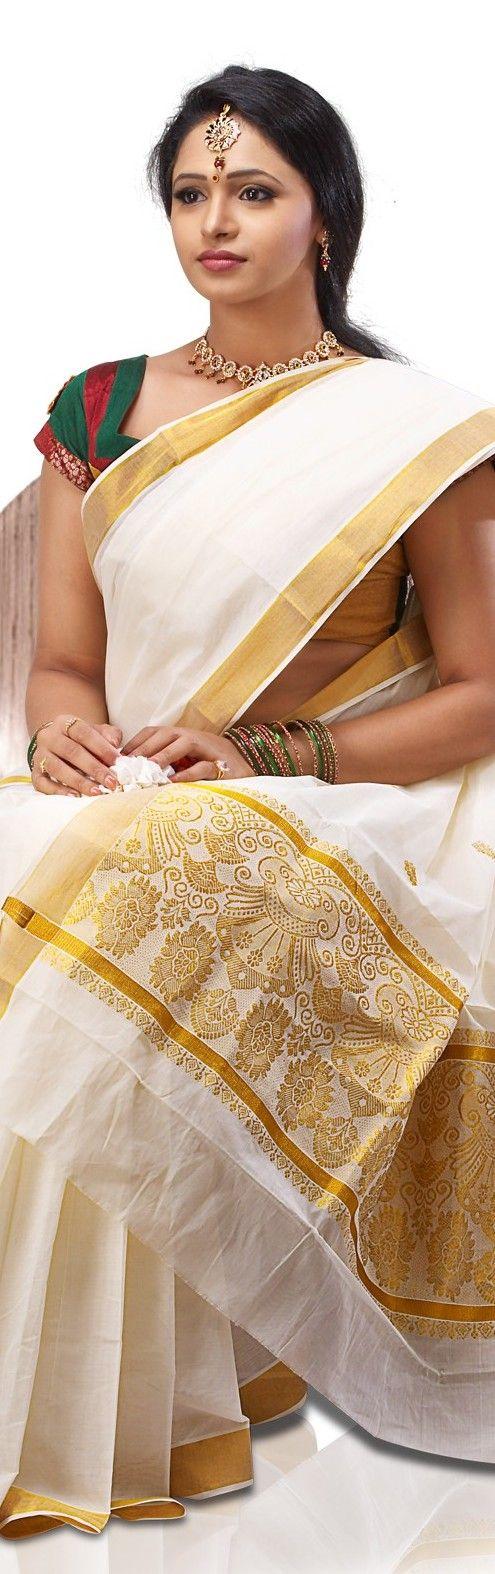 Traditional Kerala Kasavu Saree - original pin by @webjournal